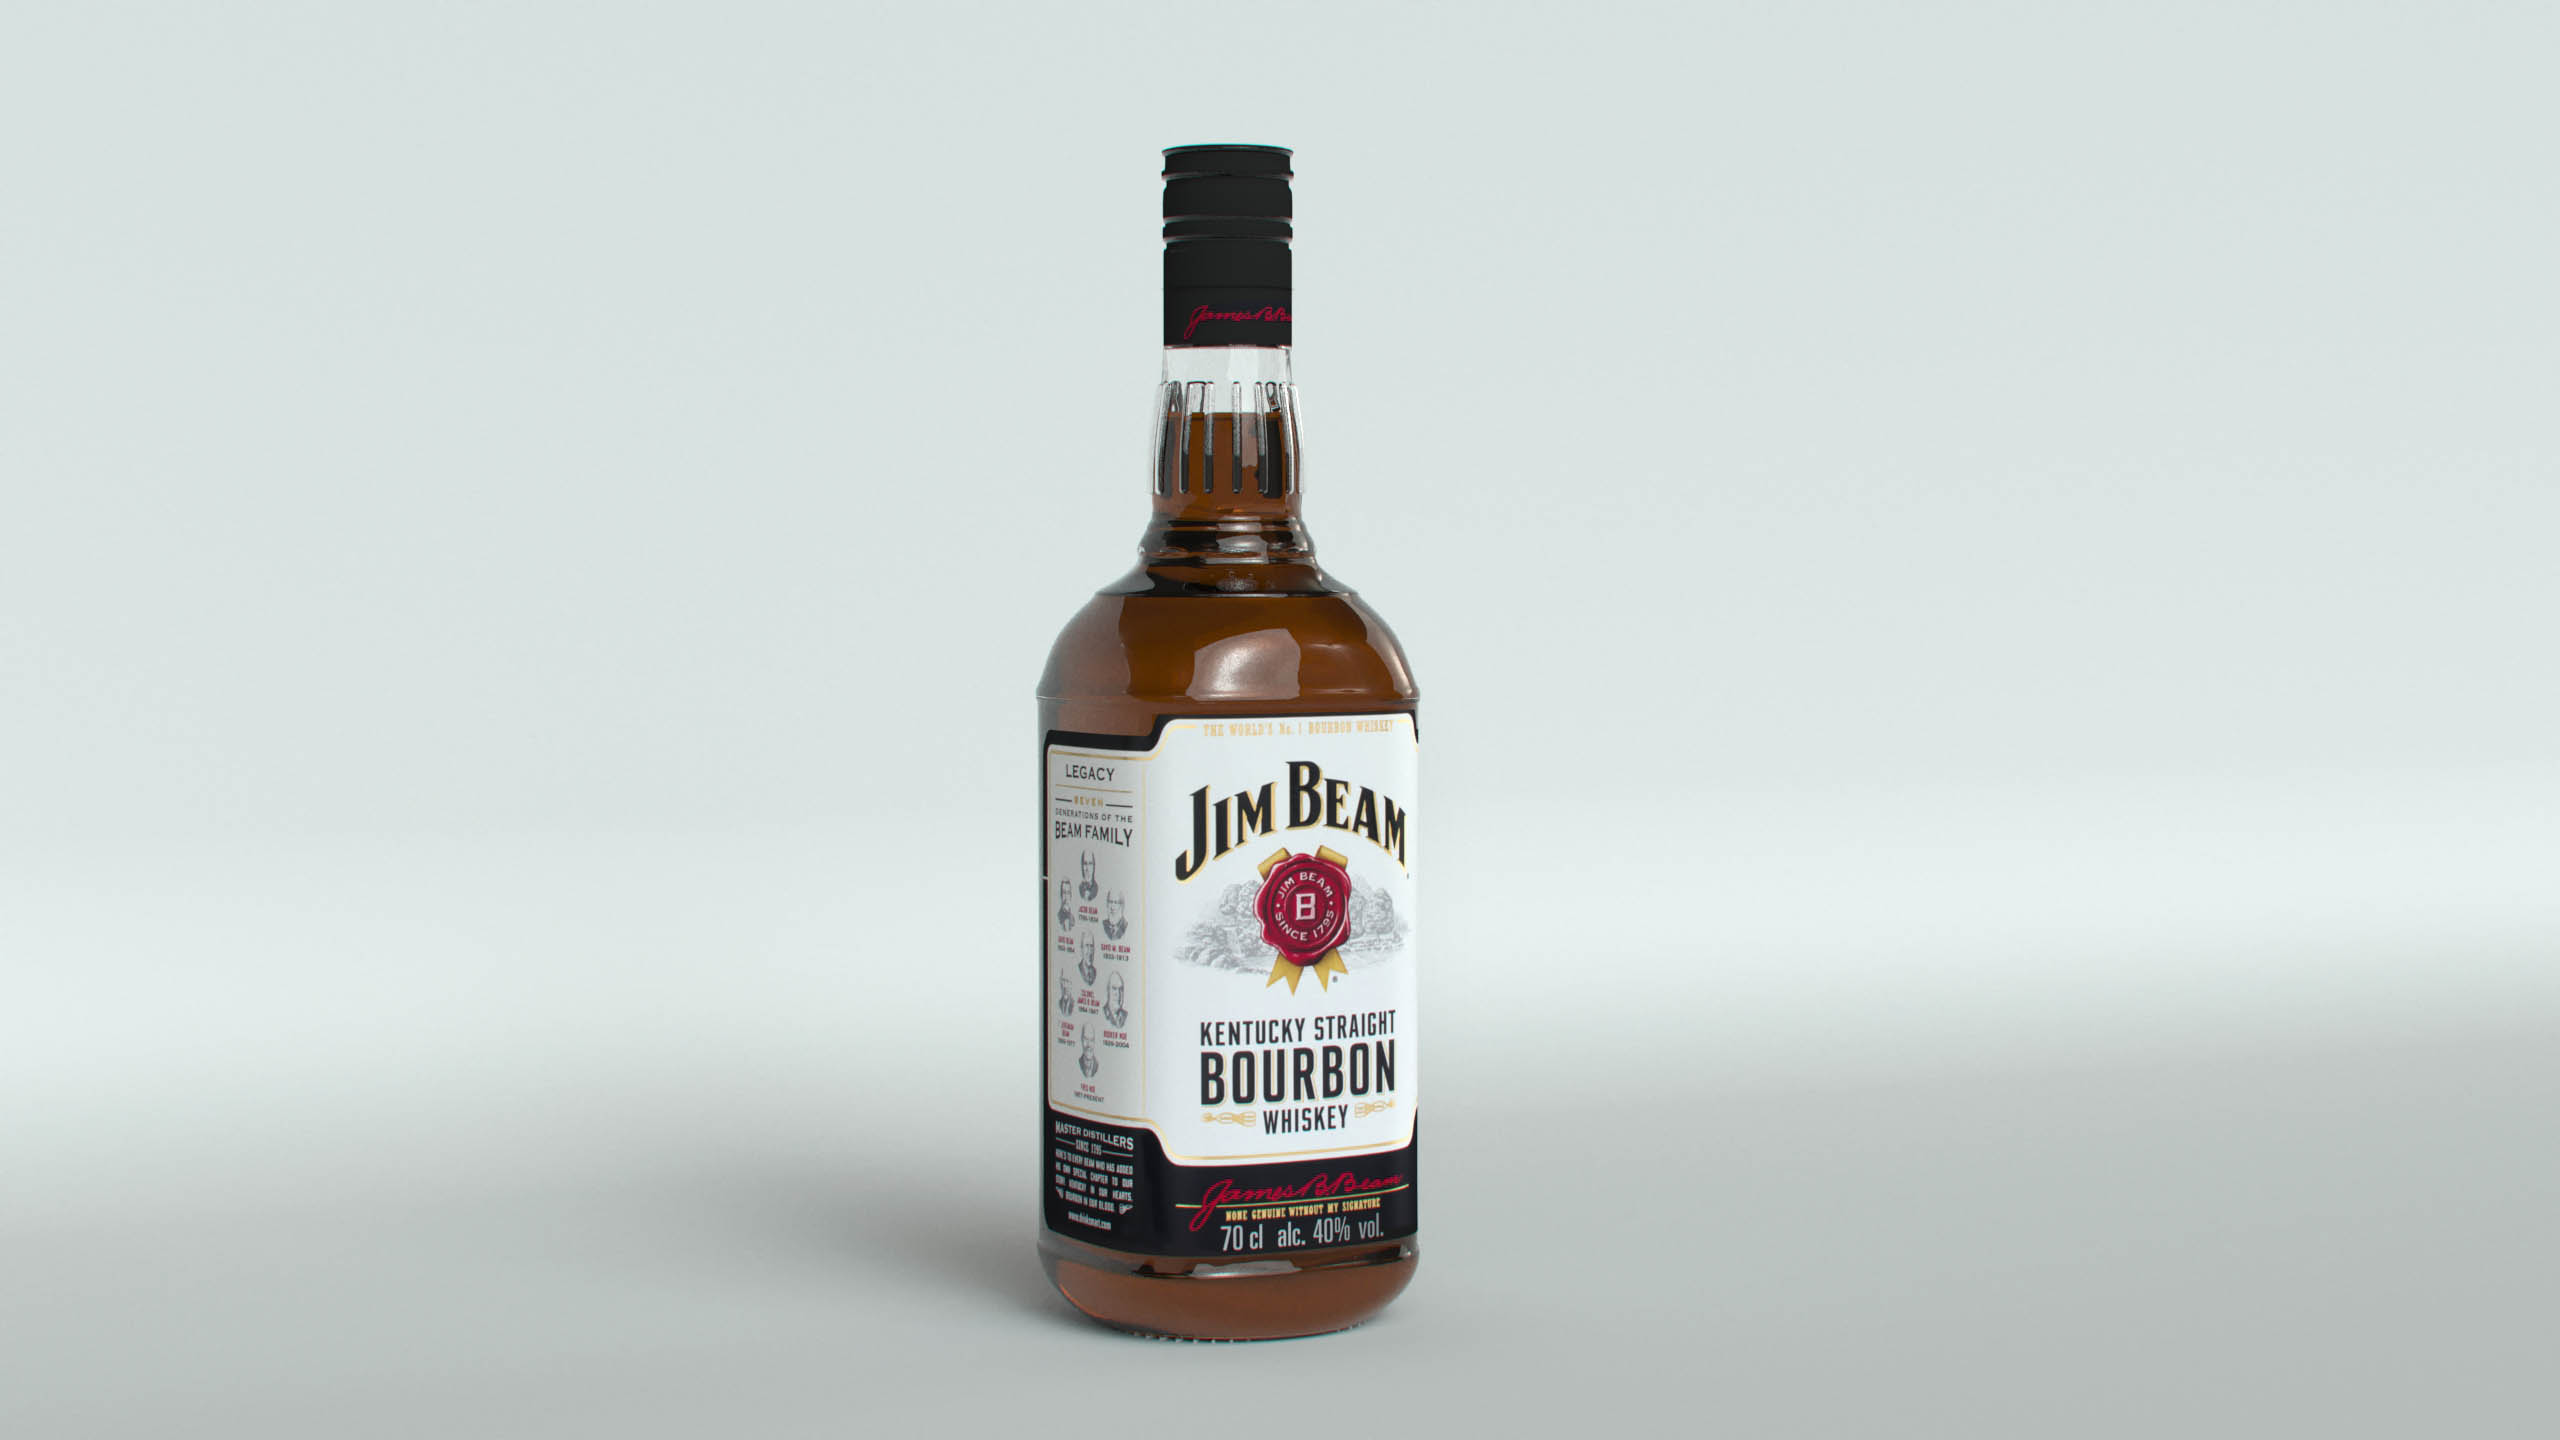 jim beam original bottle na may bagong edisyon label 3d modelo max fbx texture obj 282184